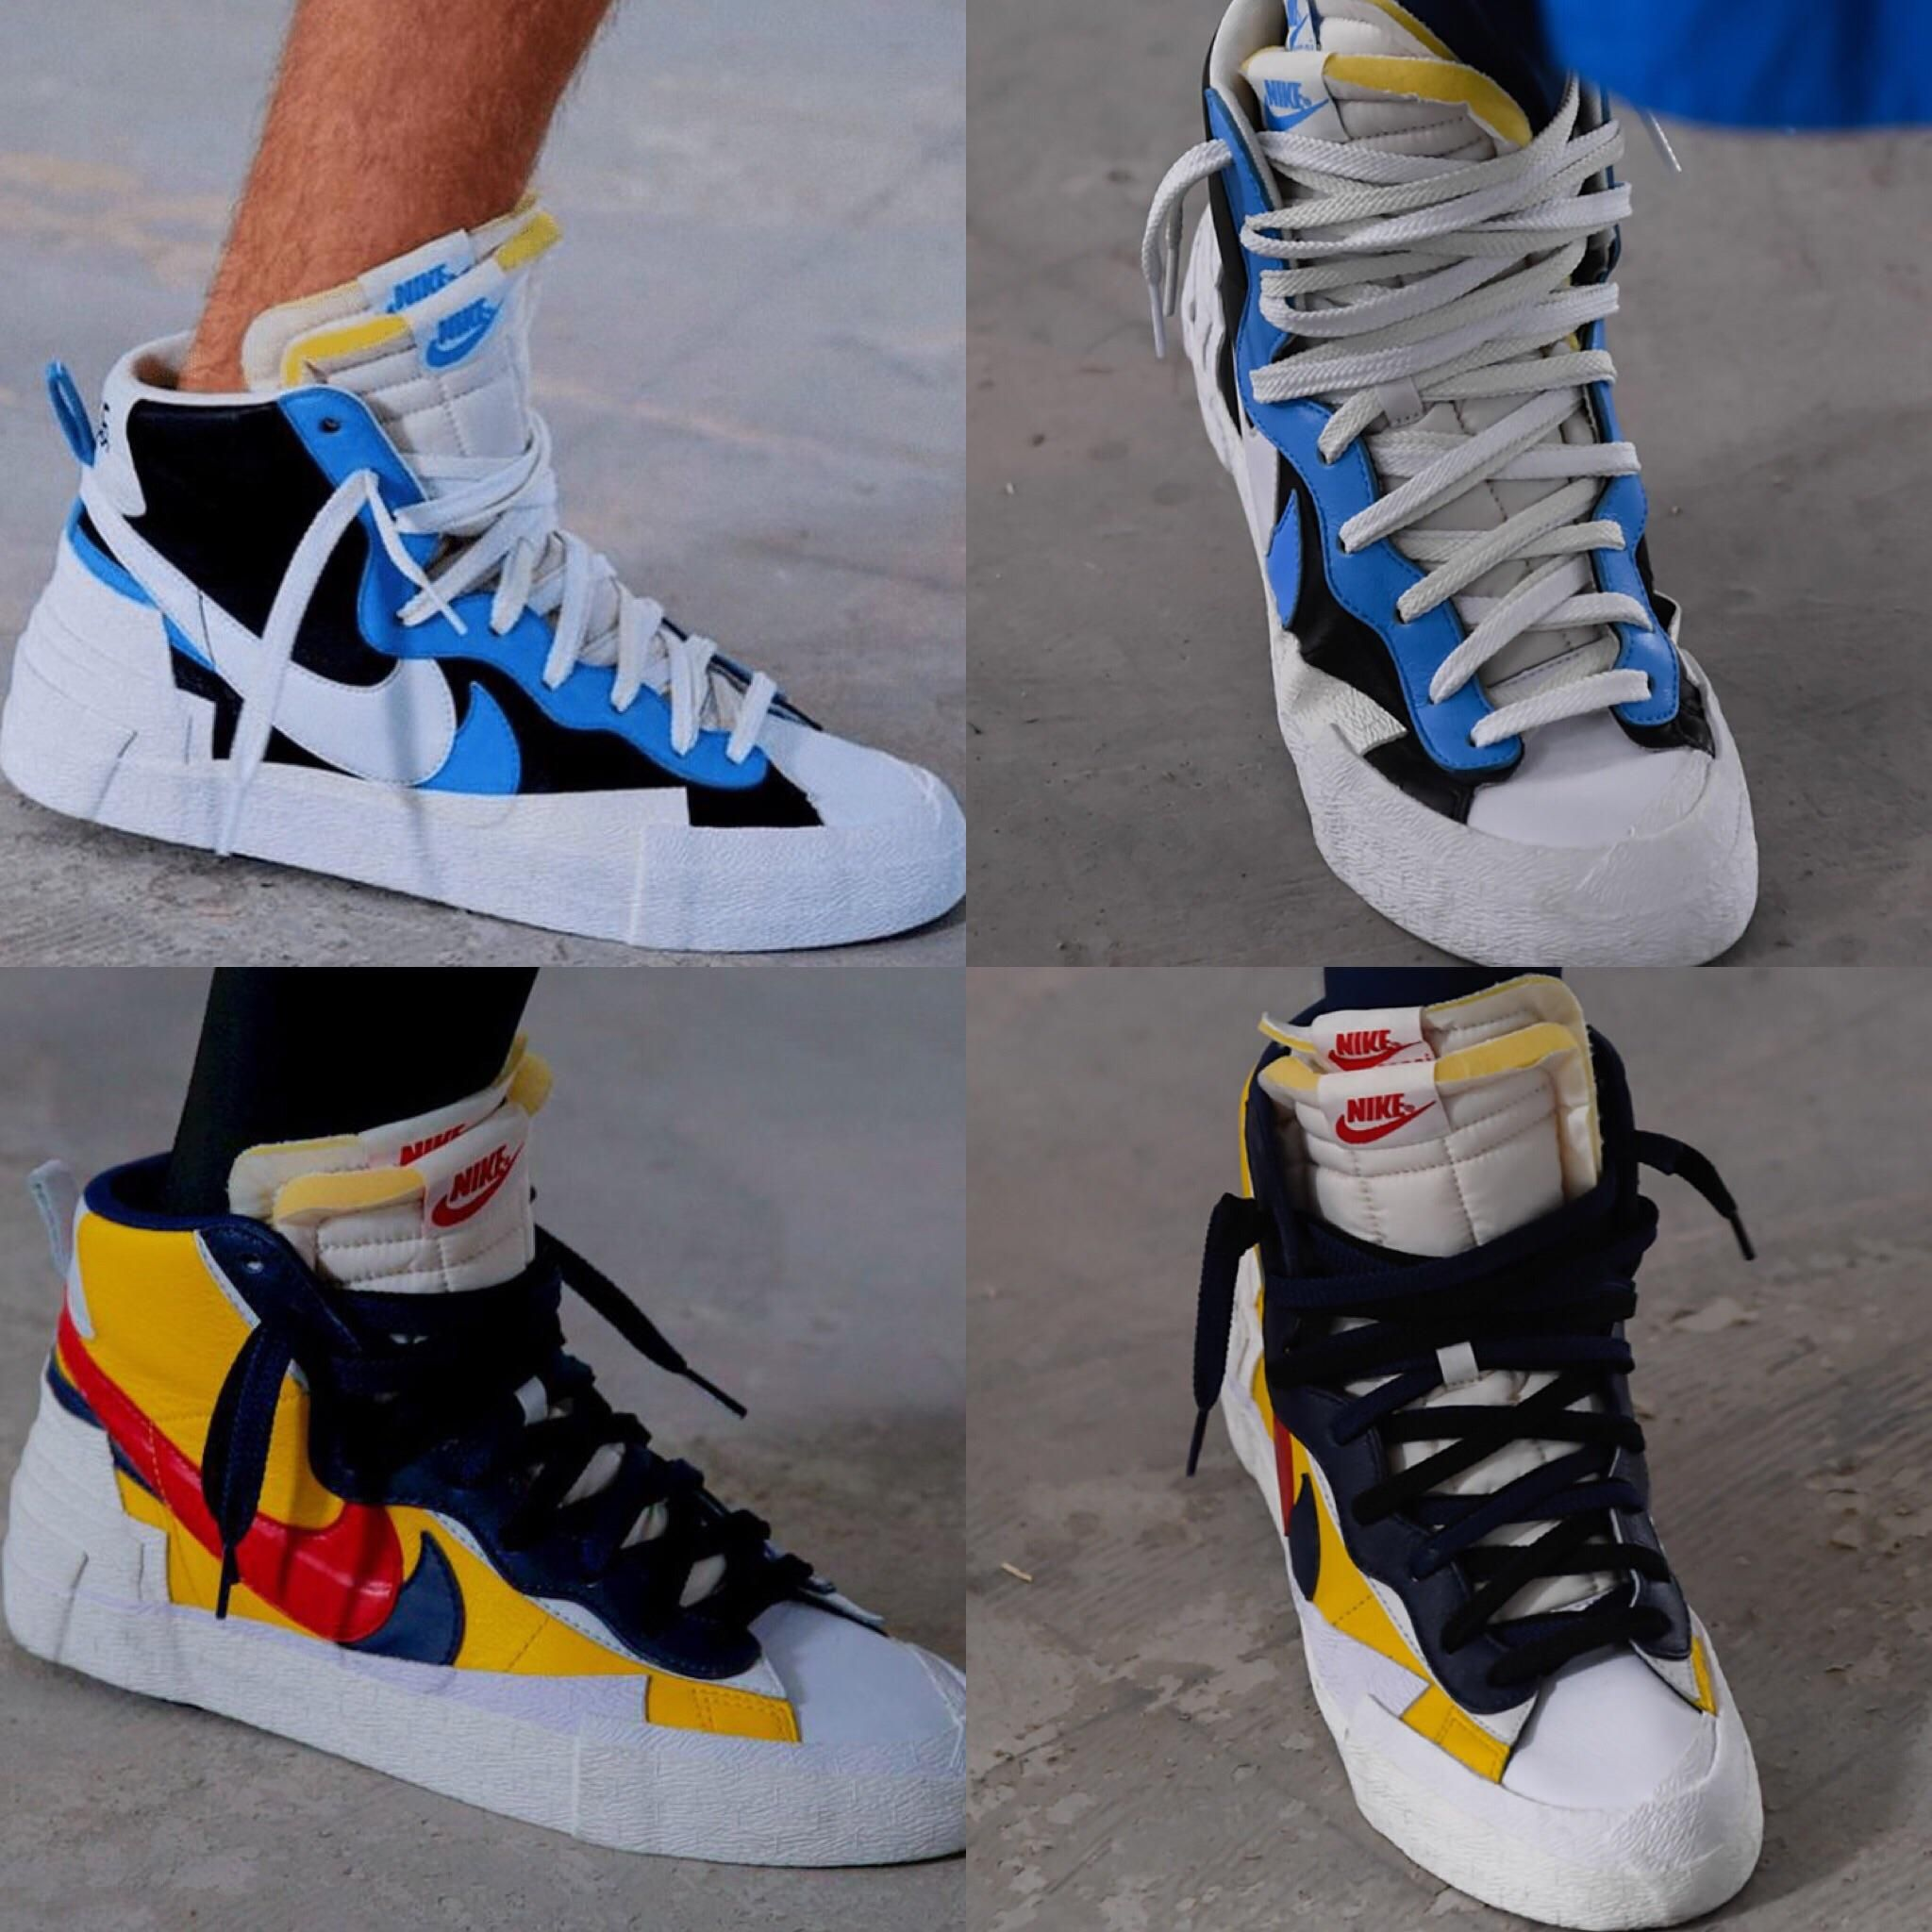 great fit factory outlets popular stores Sacai x Nike Blazer for S/S 19 : Sneakers in 2019 | Sneakers ...